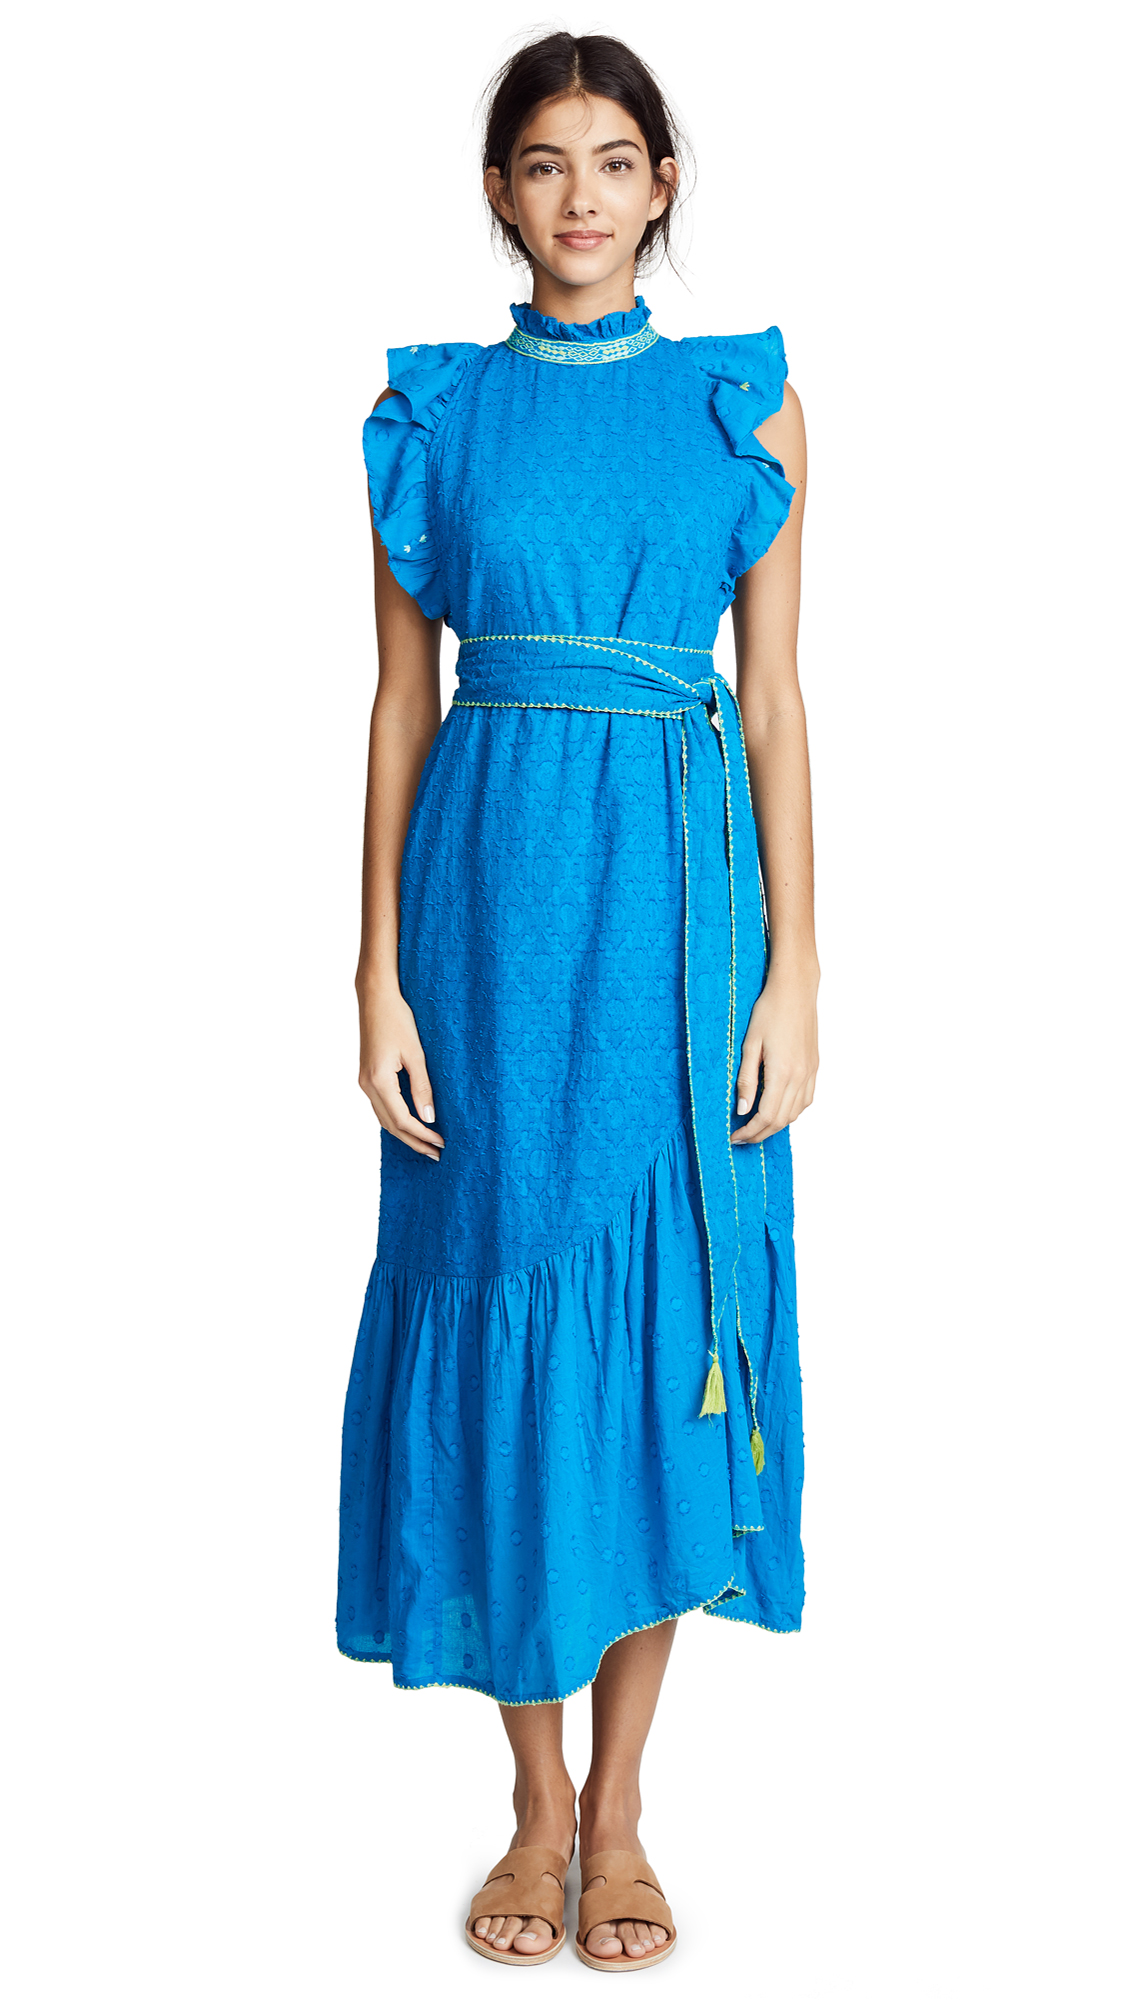 BANJANAN Bulbul Dress in Turquoise Cotton Dobby